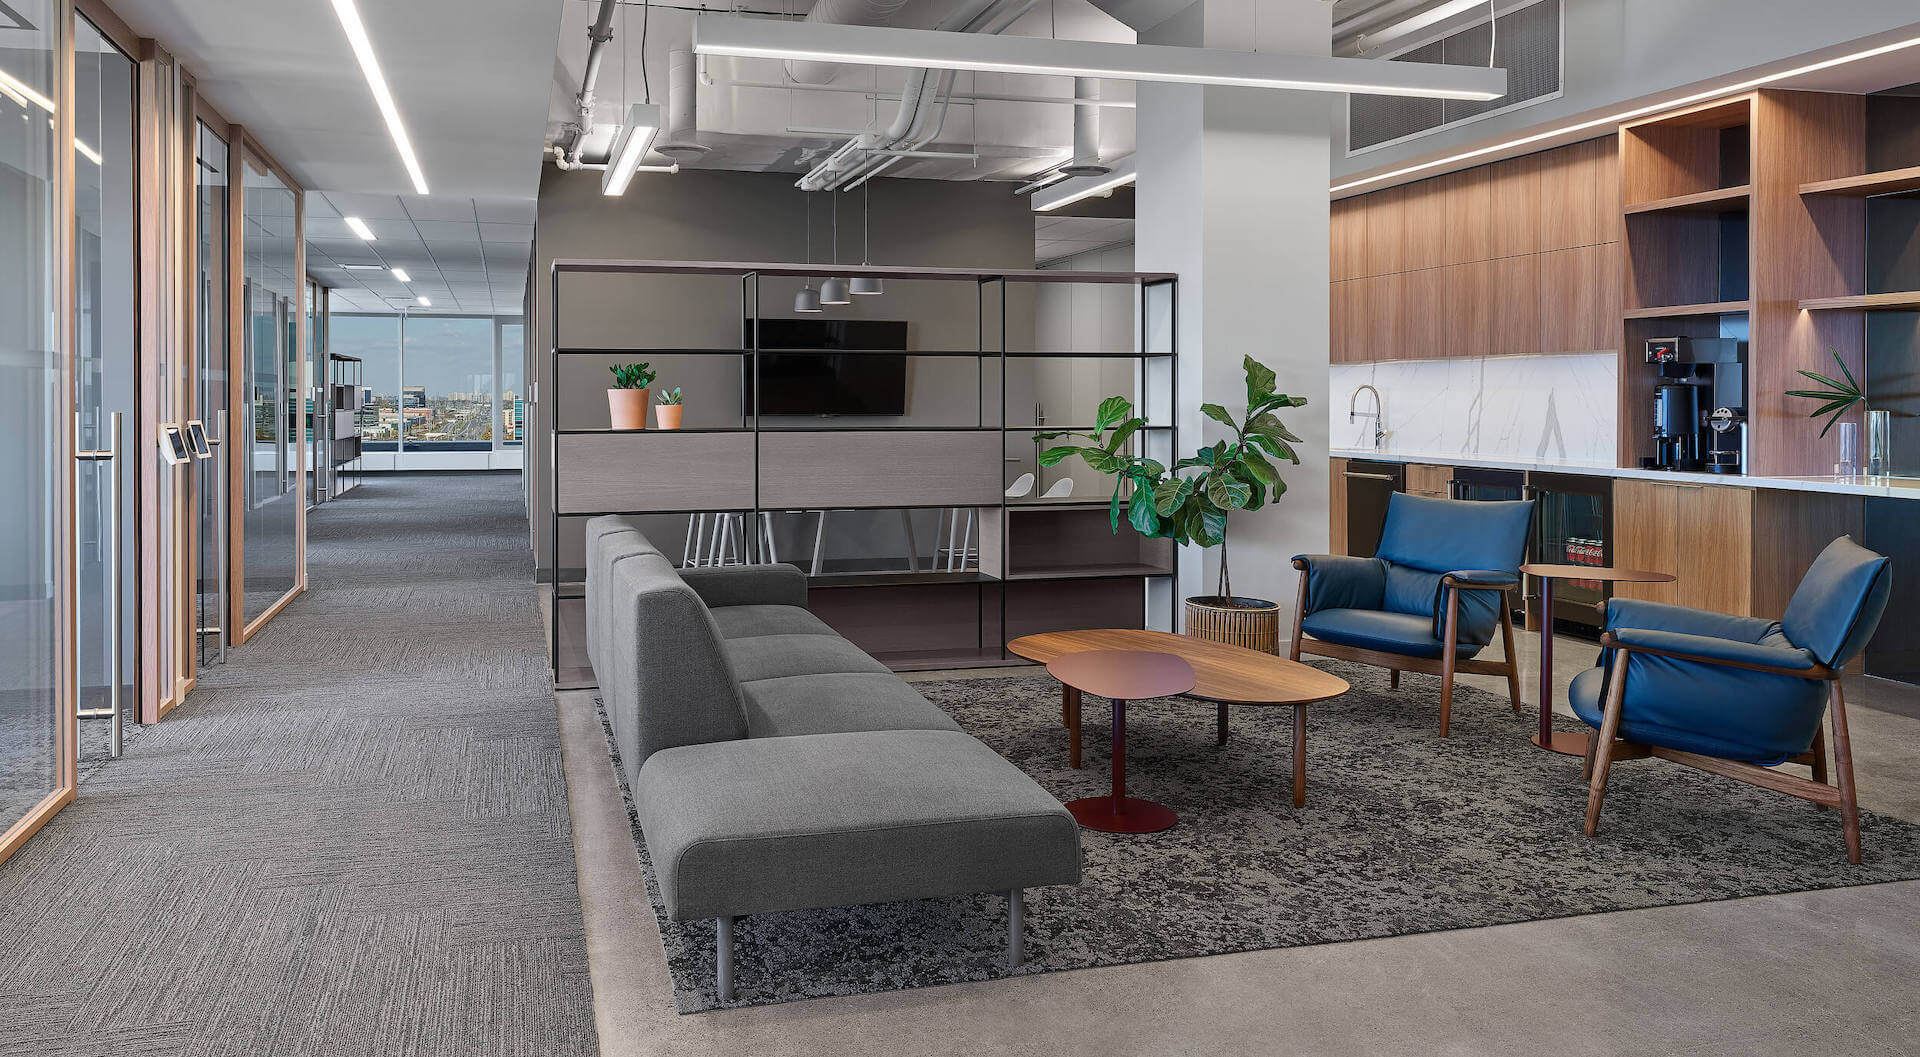 Collaborative Spaces: Designing for Well-Being and Flexibility